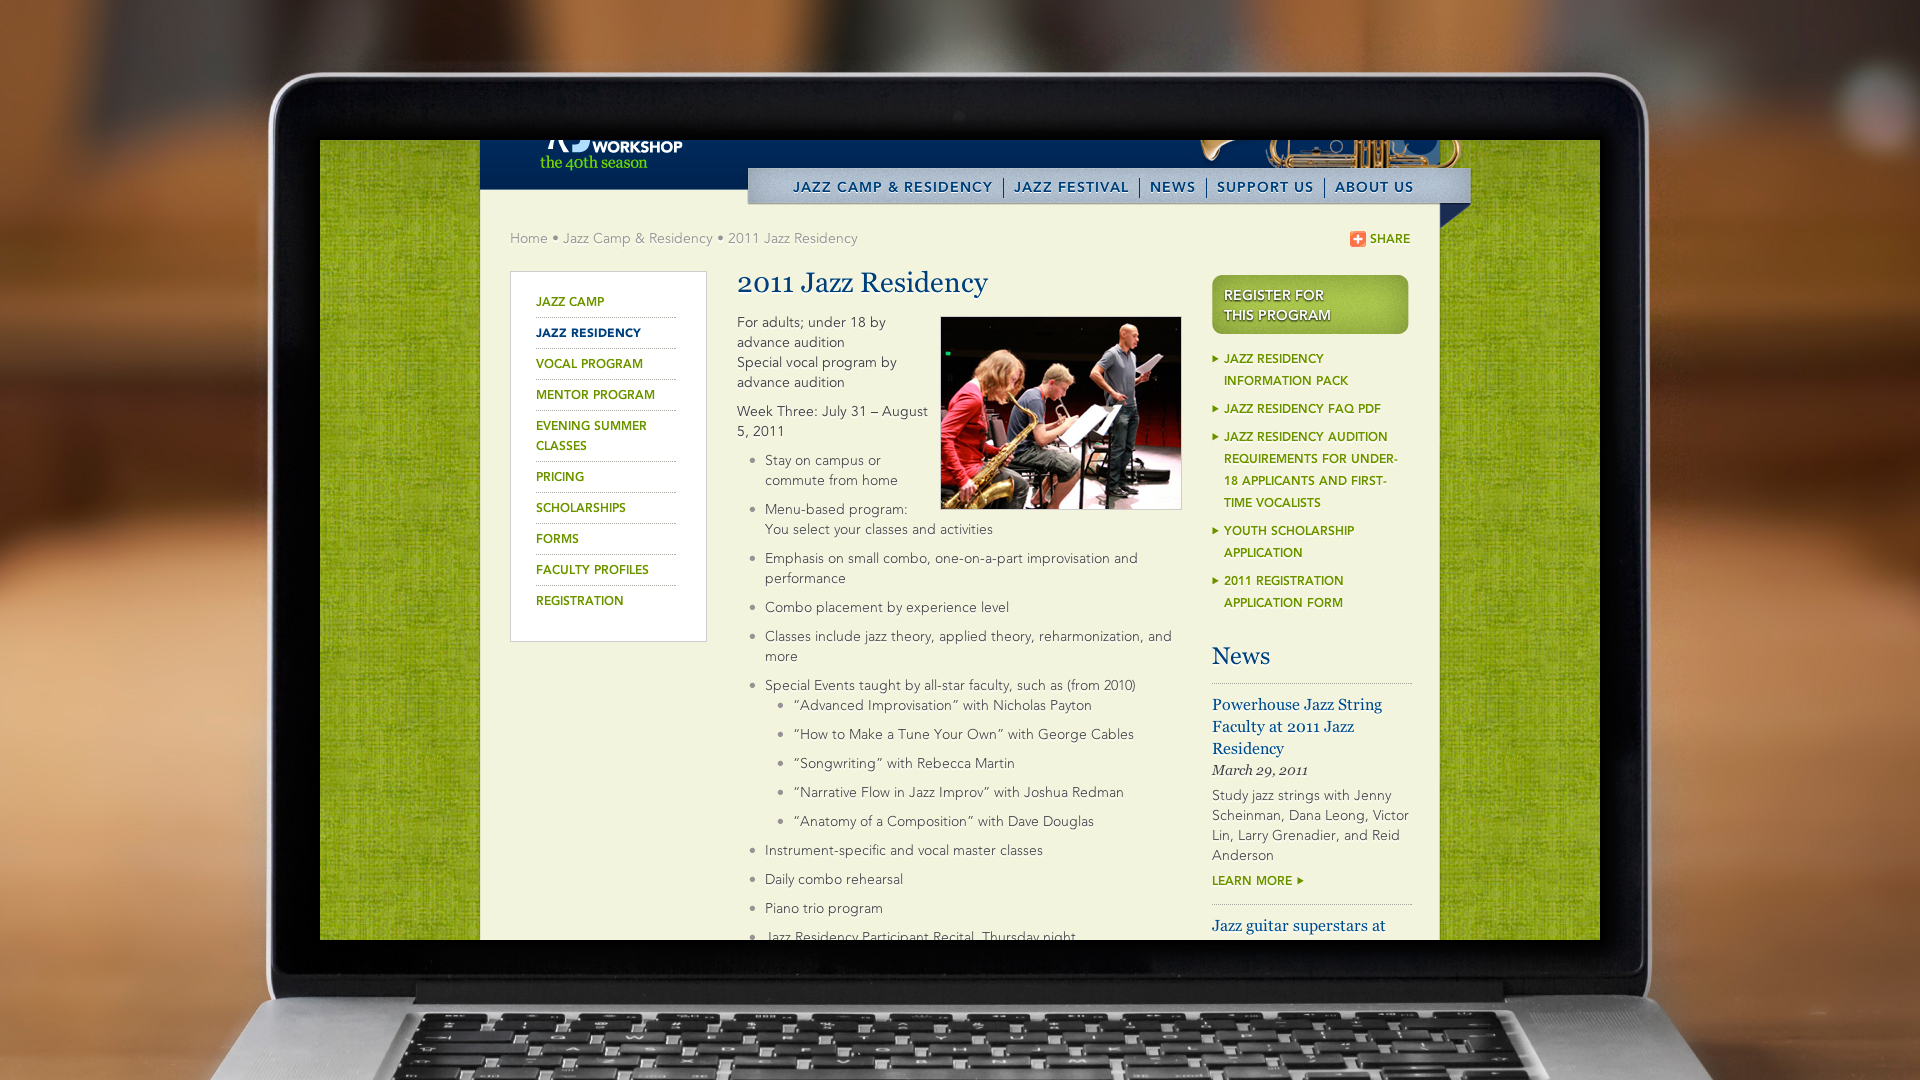 Web – Jazz Camp & Residency – Jazz Residency